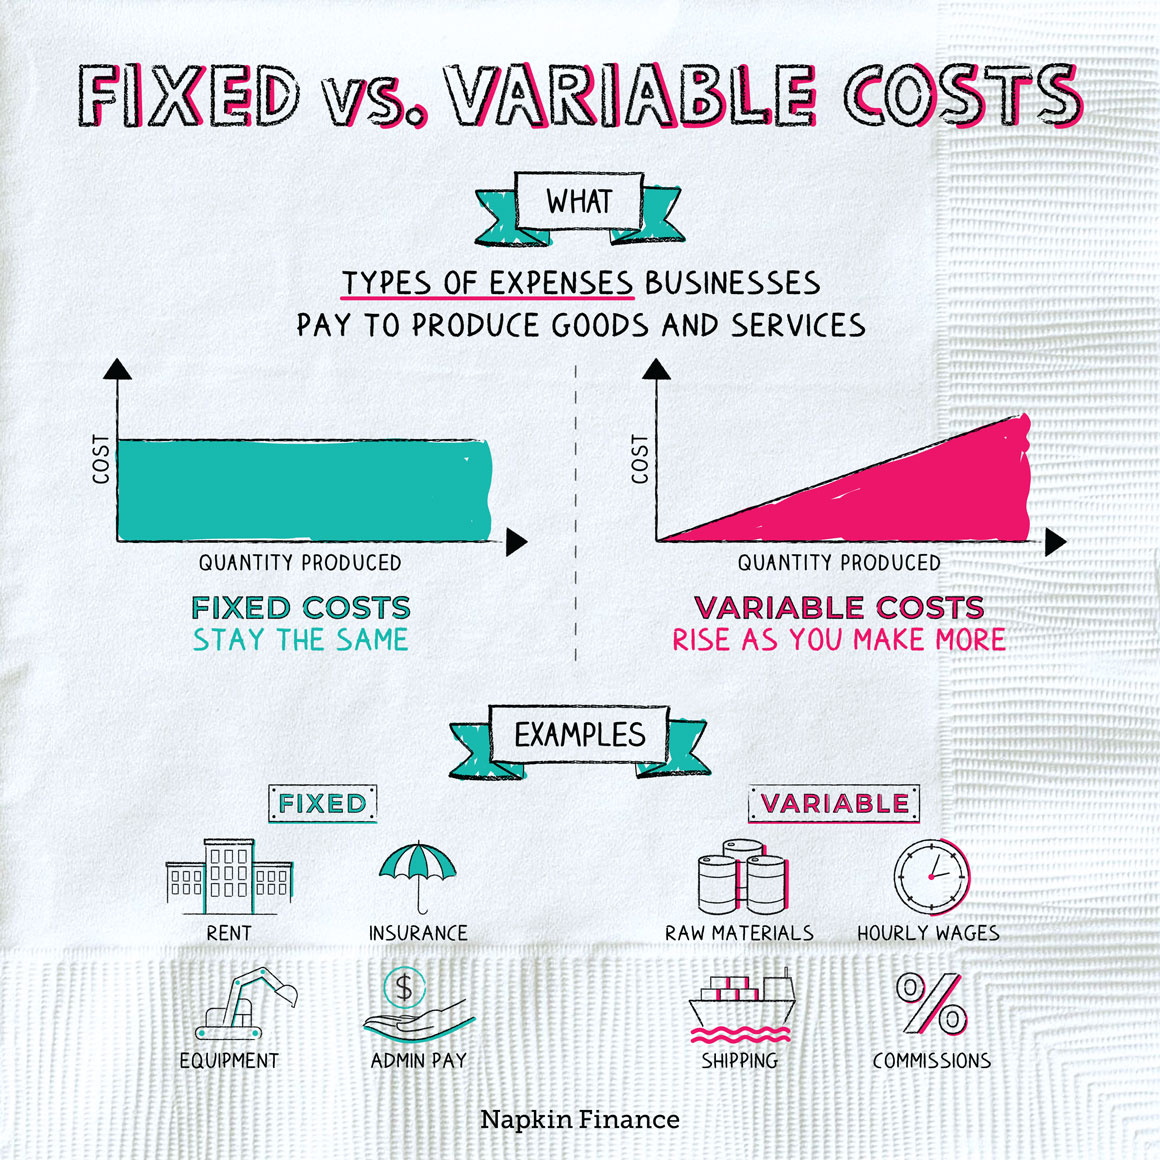 Fixed vs Variable Costs